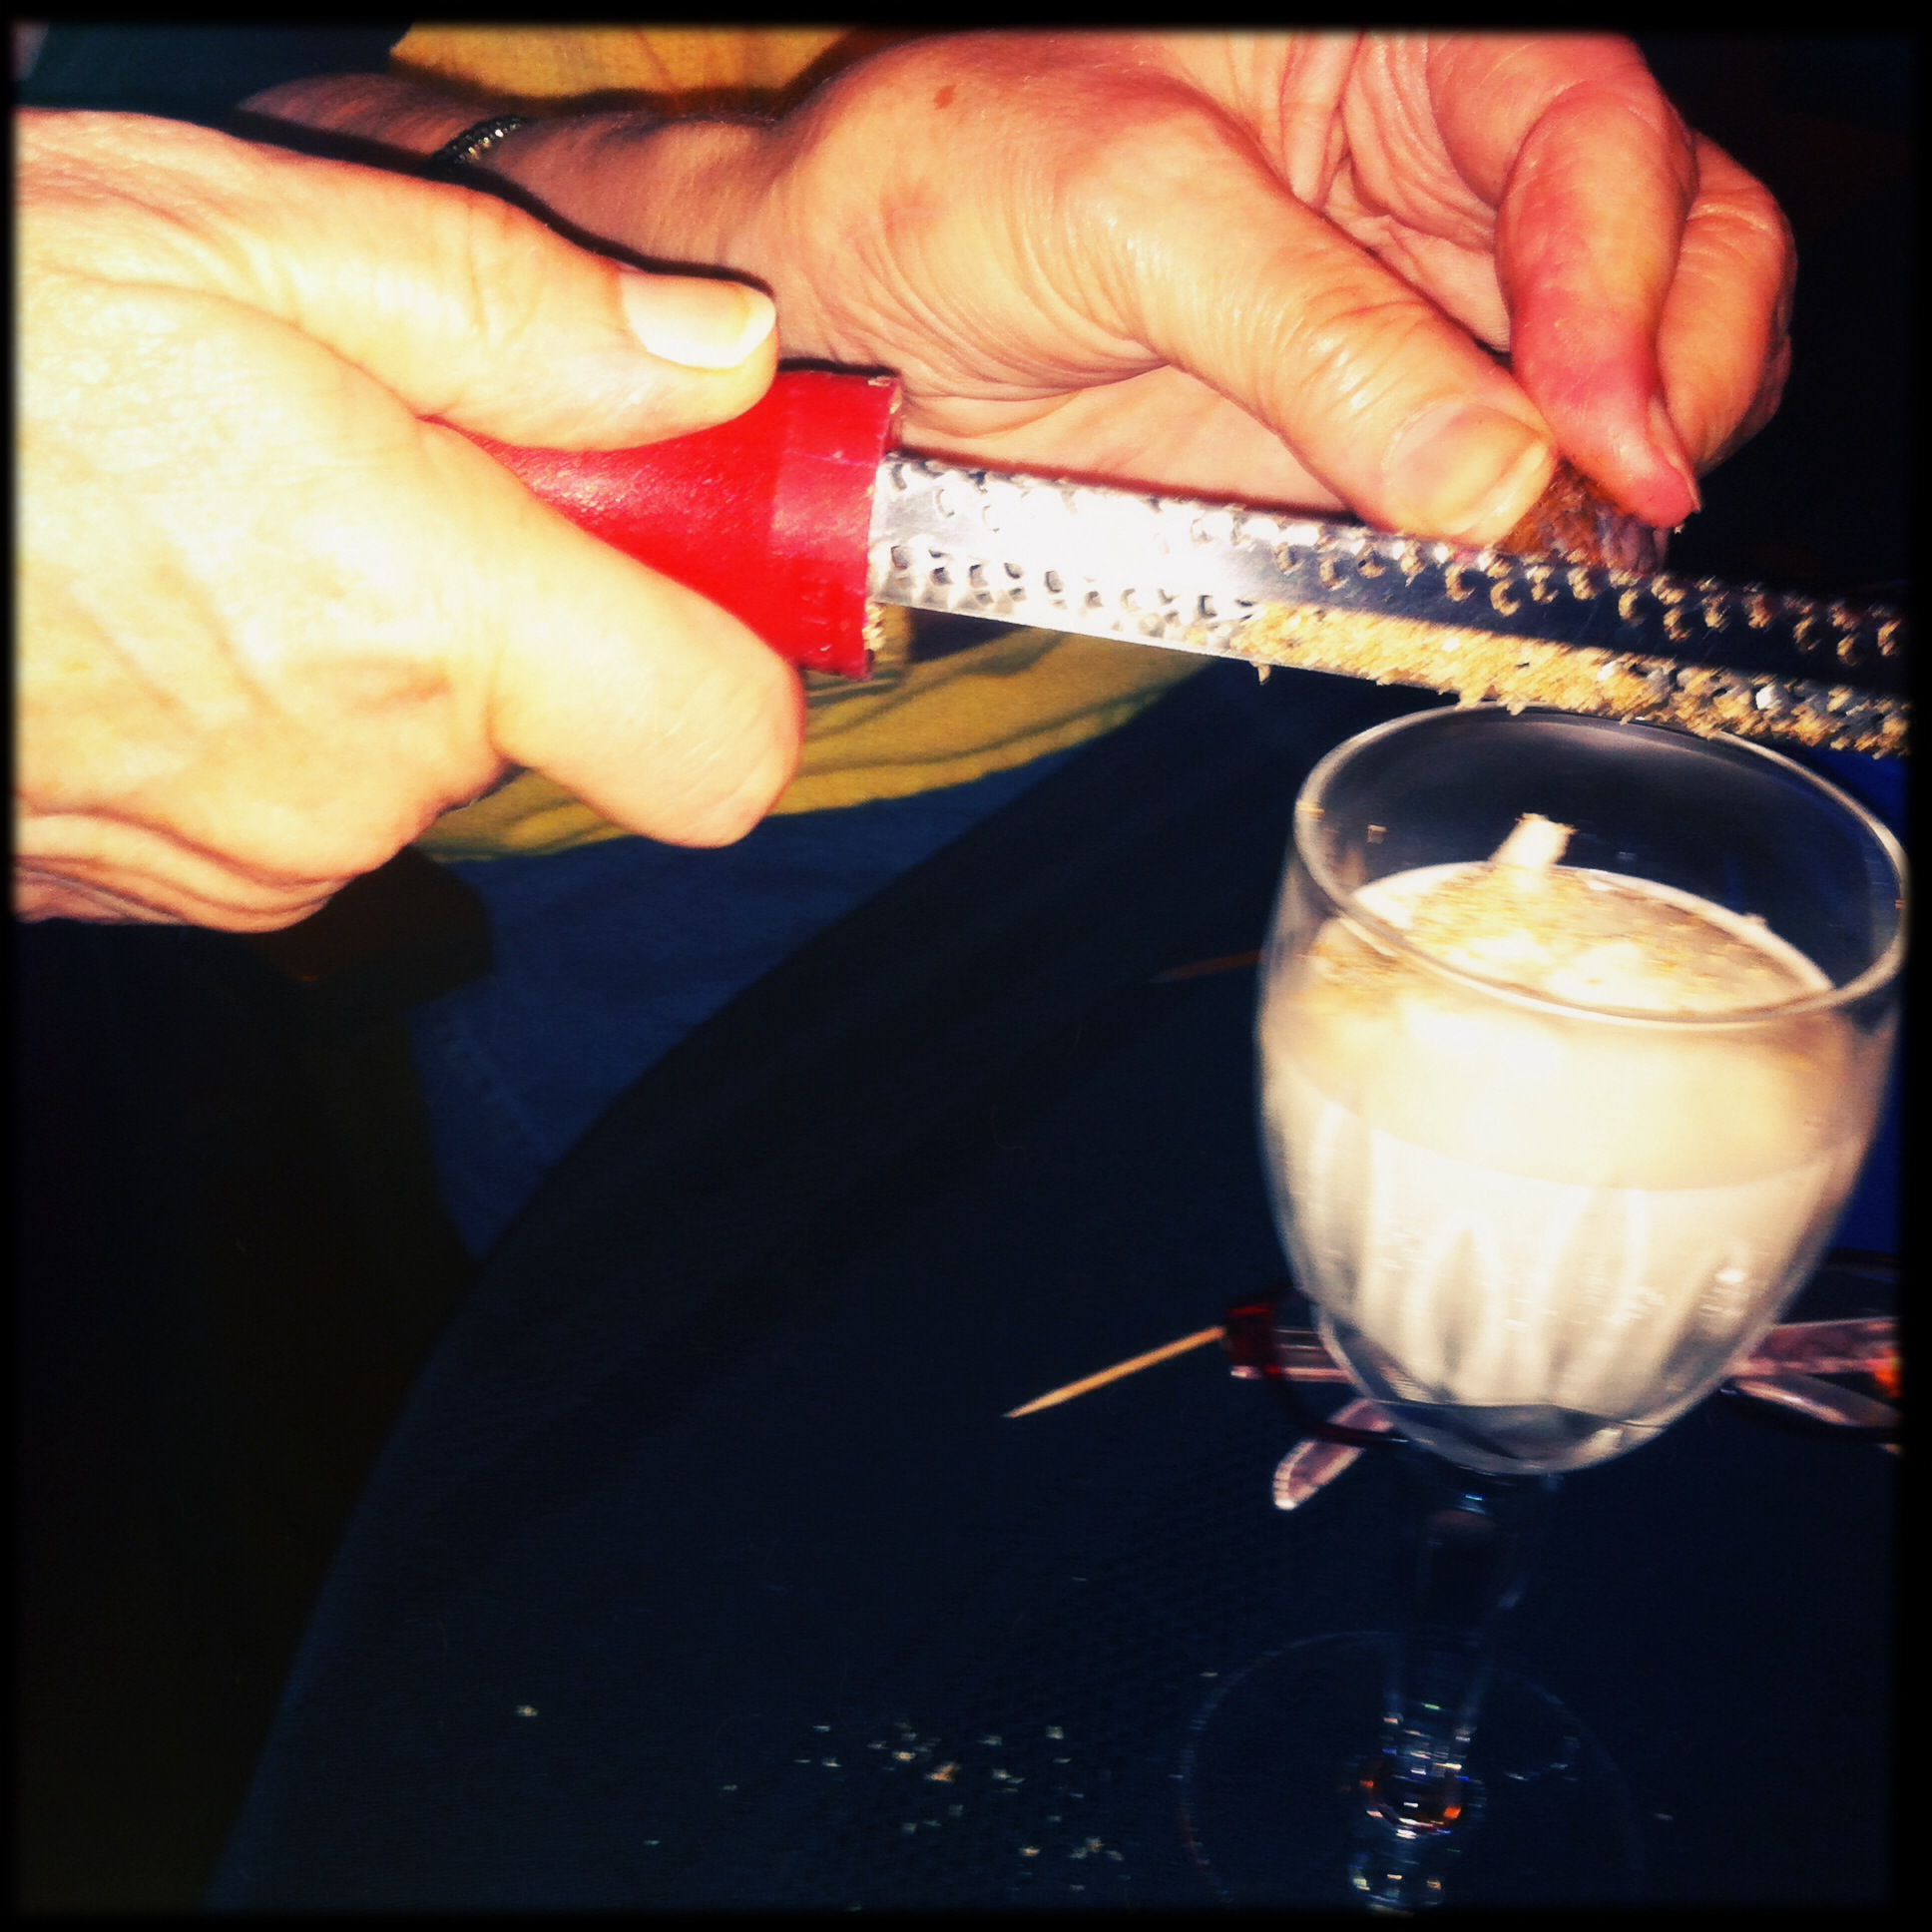 Connie grates nutmeg onto homemade Brandy Alexander